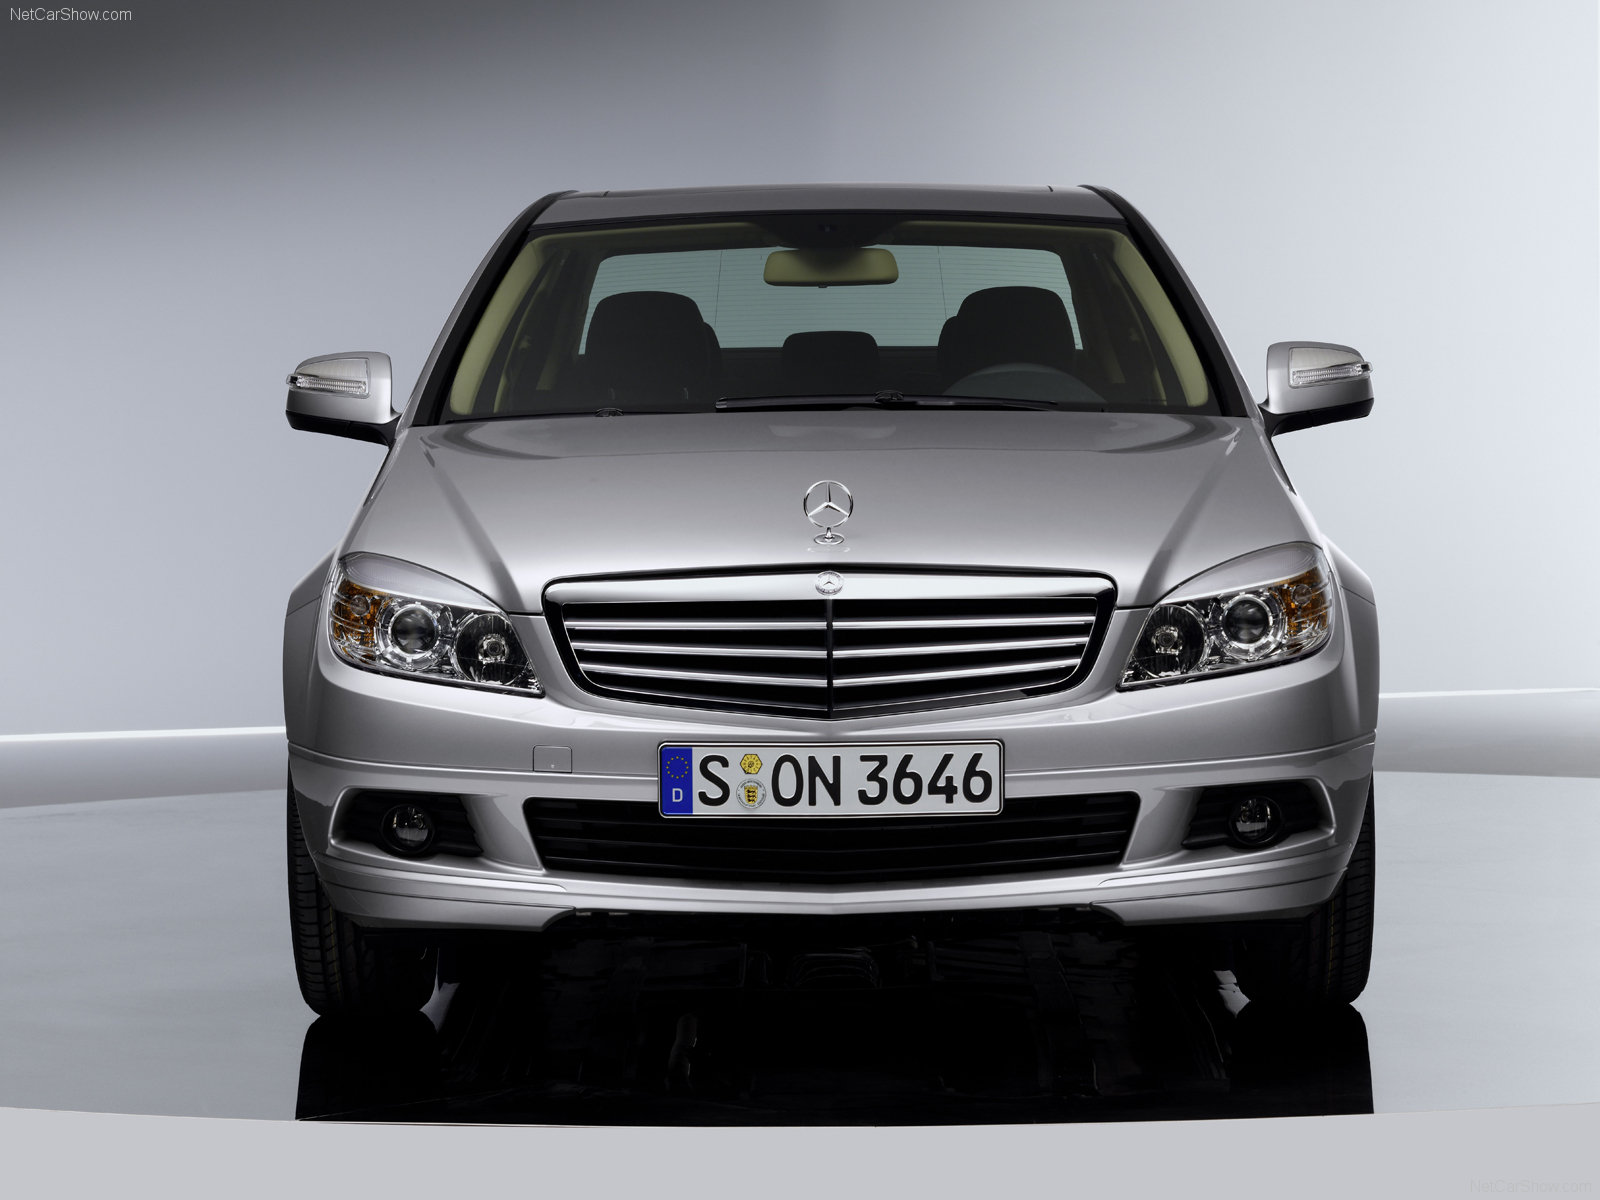 Mercedes-Benz C-Class W204 photo 40974